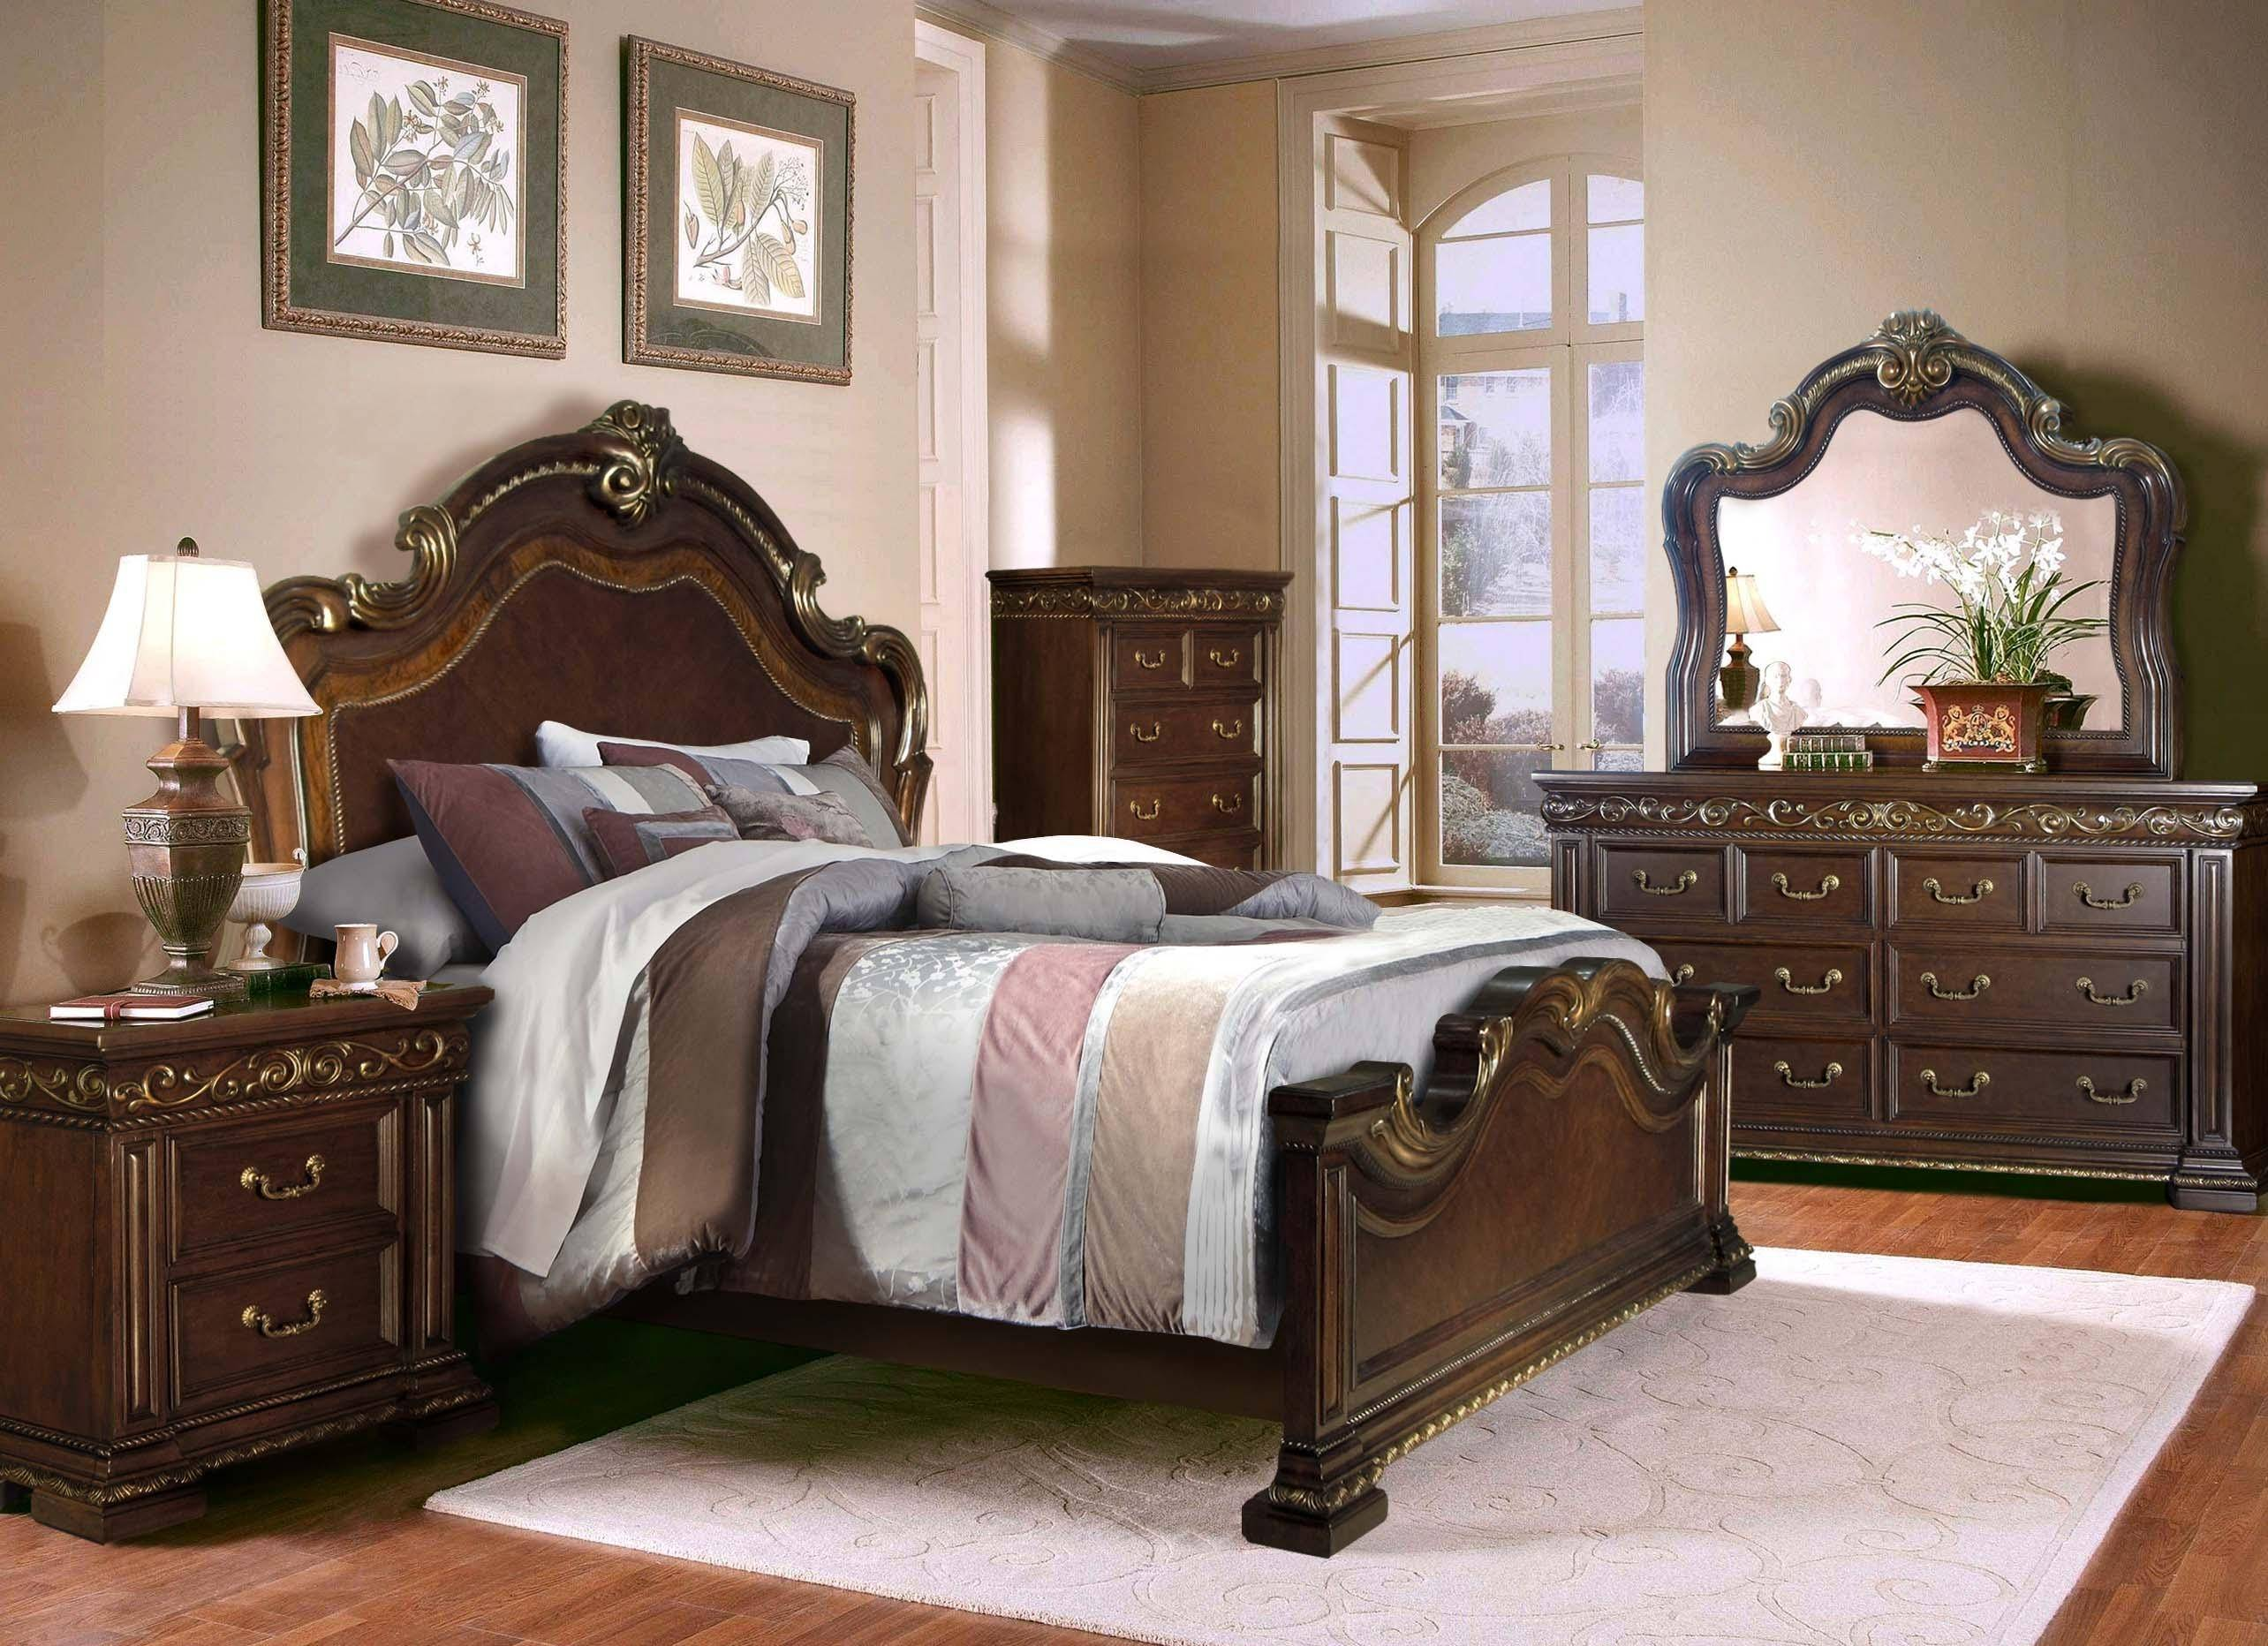 The Offer Is One Eastern King Bed Only Take Respite From A Busy Day In This Heavenly B608 Collection It Built With Fine Wood And